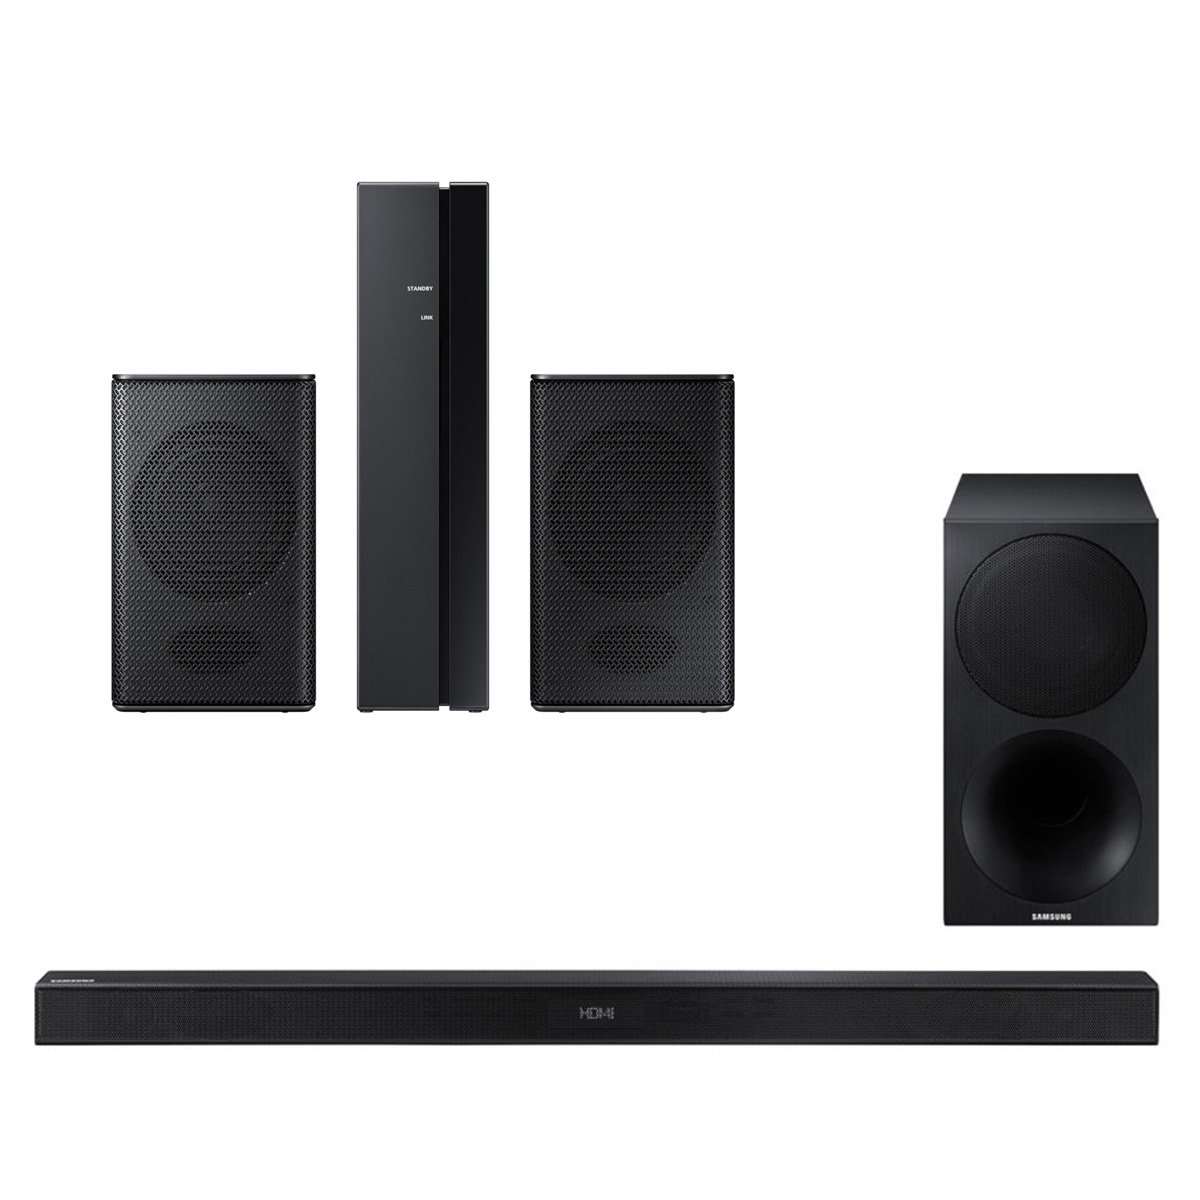 Samsung HW-M450 320W 2.1 Channel Soundbar with Wireless Subwoofer and SWA-8500S Wireless Rear Speakers Kit